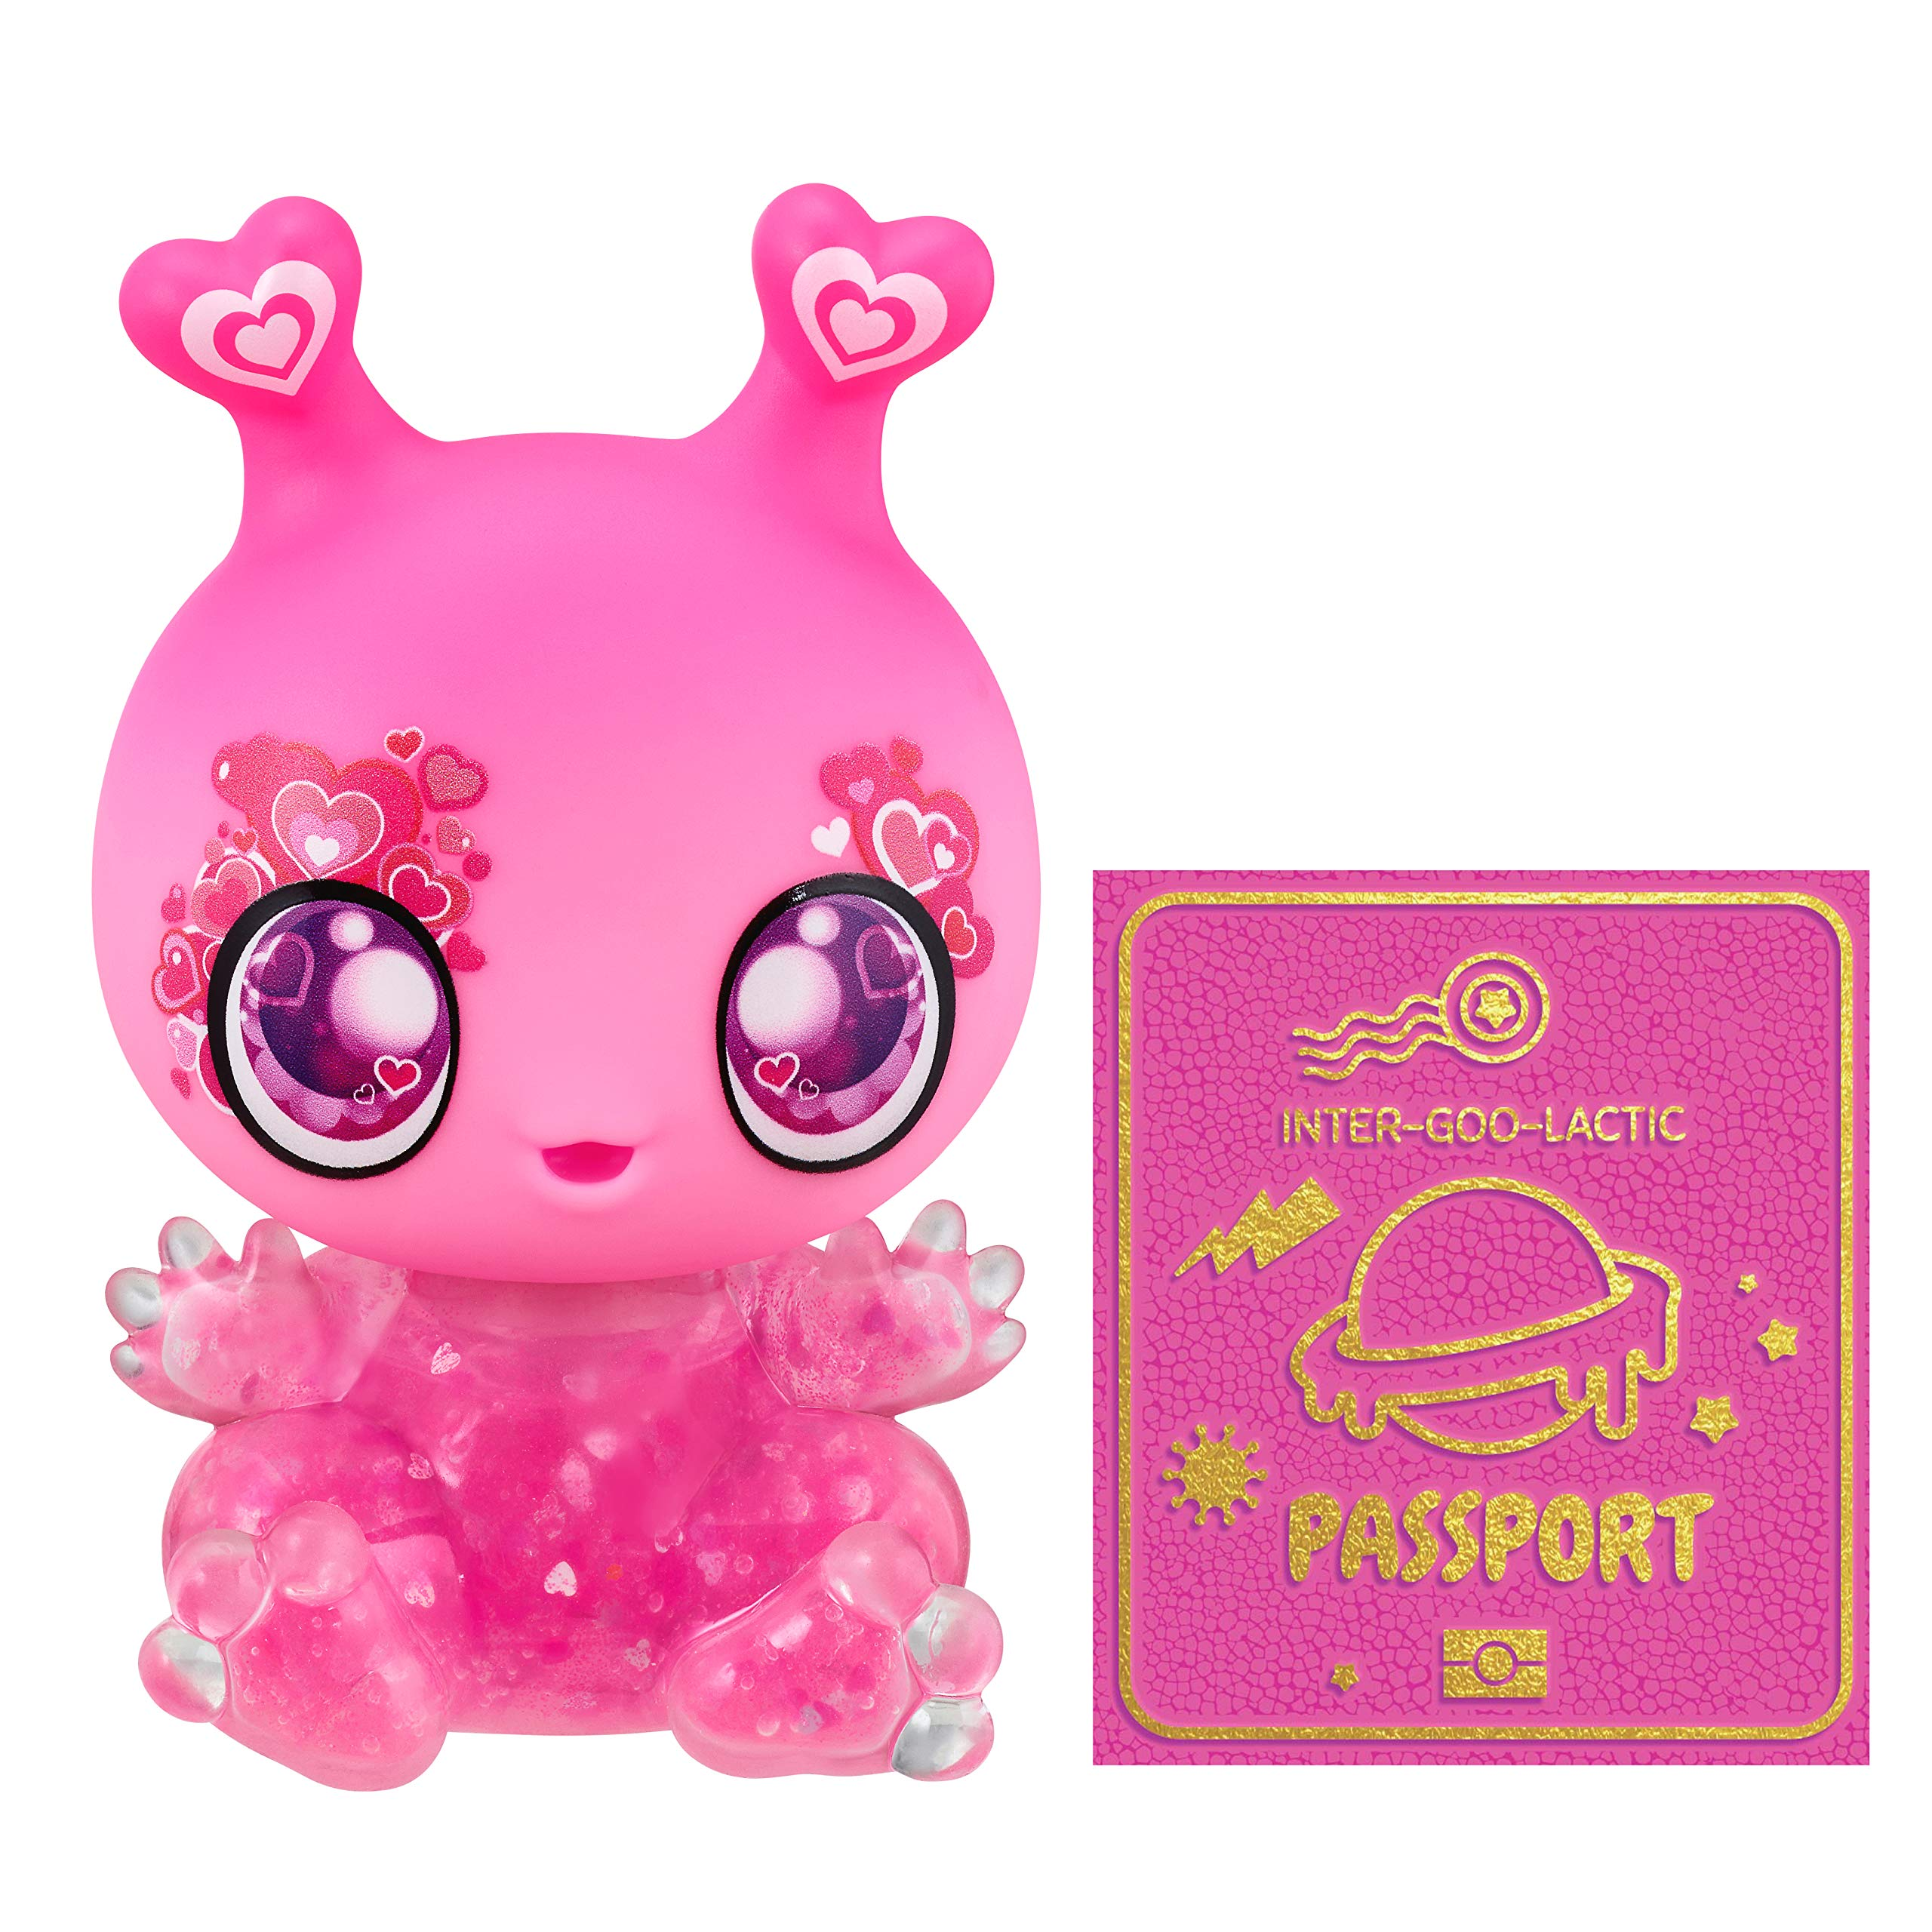 Goo Goo Galaxy - Pink Blink Goo Drop Doll, 5.5 inch Small Doll with Squishy Goo Filled Light-up Body